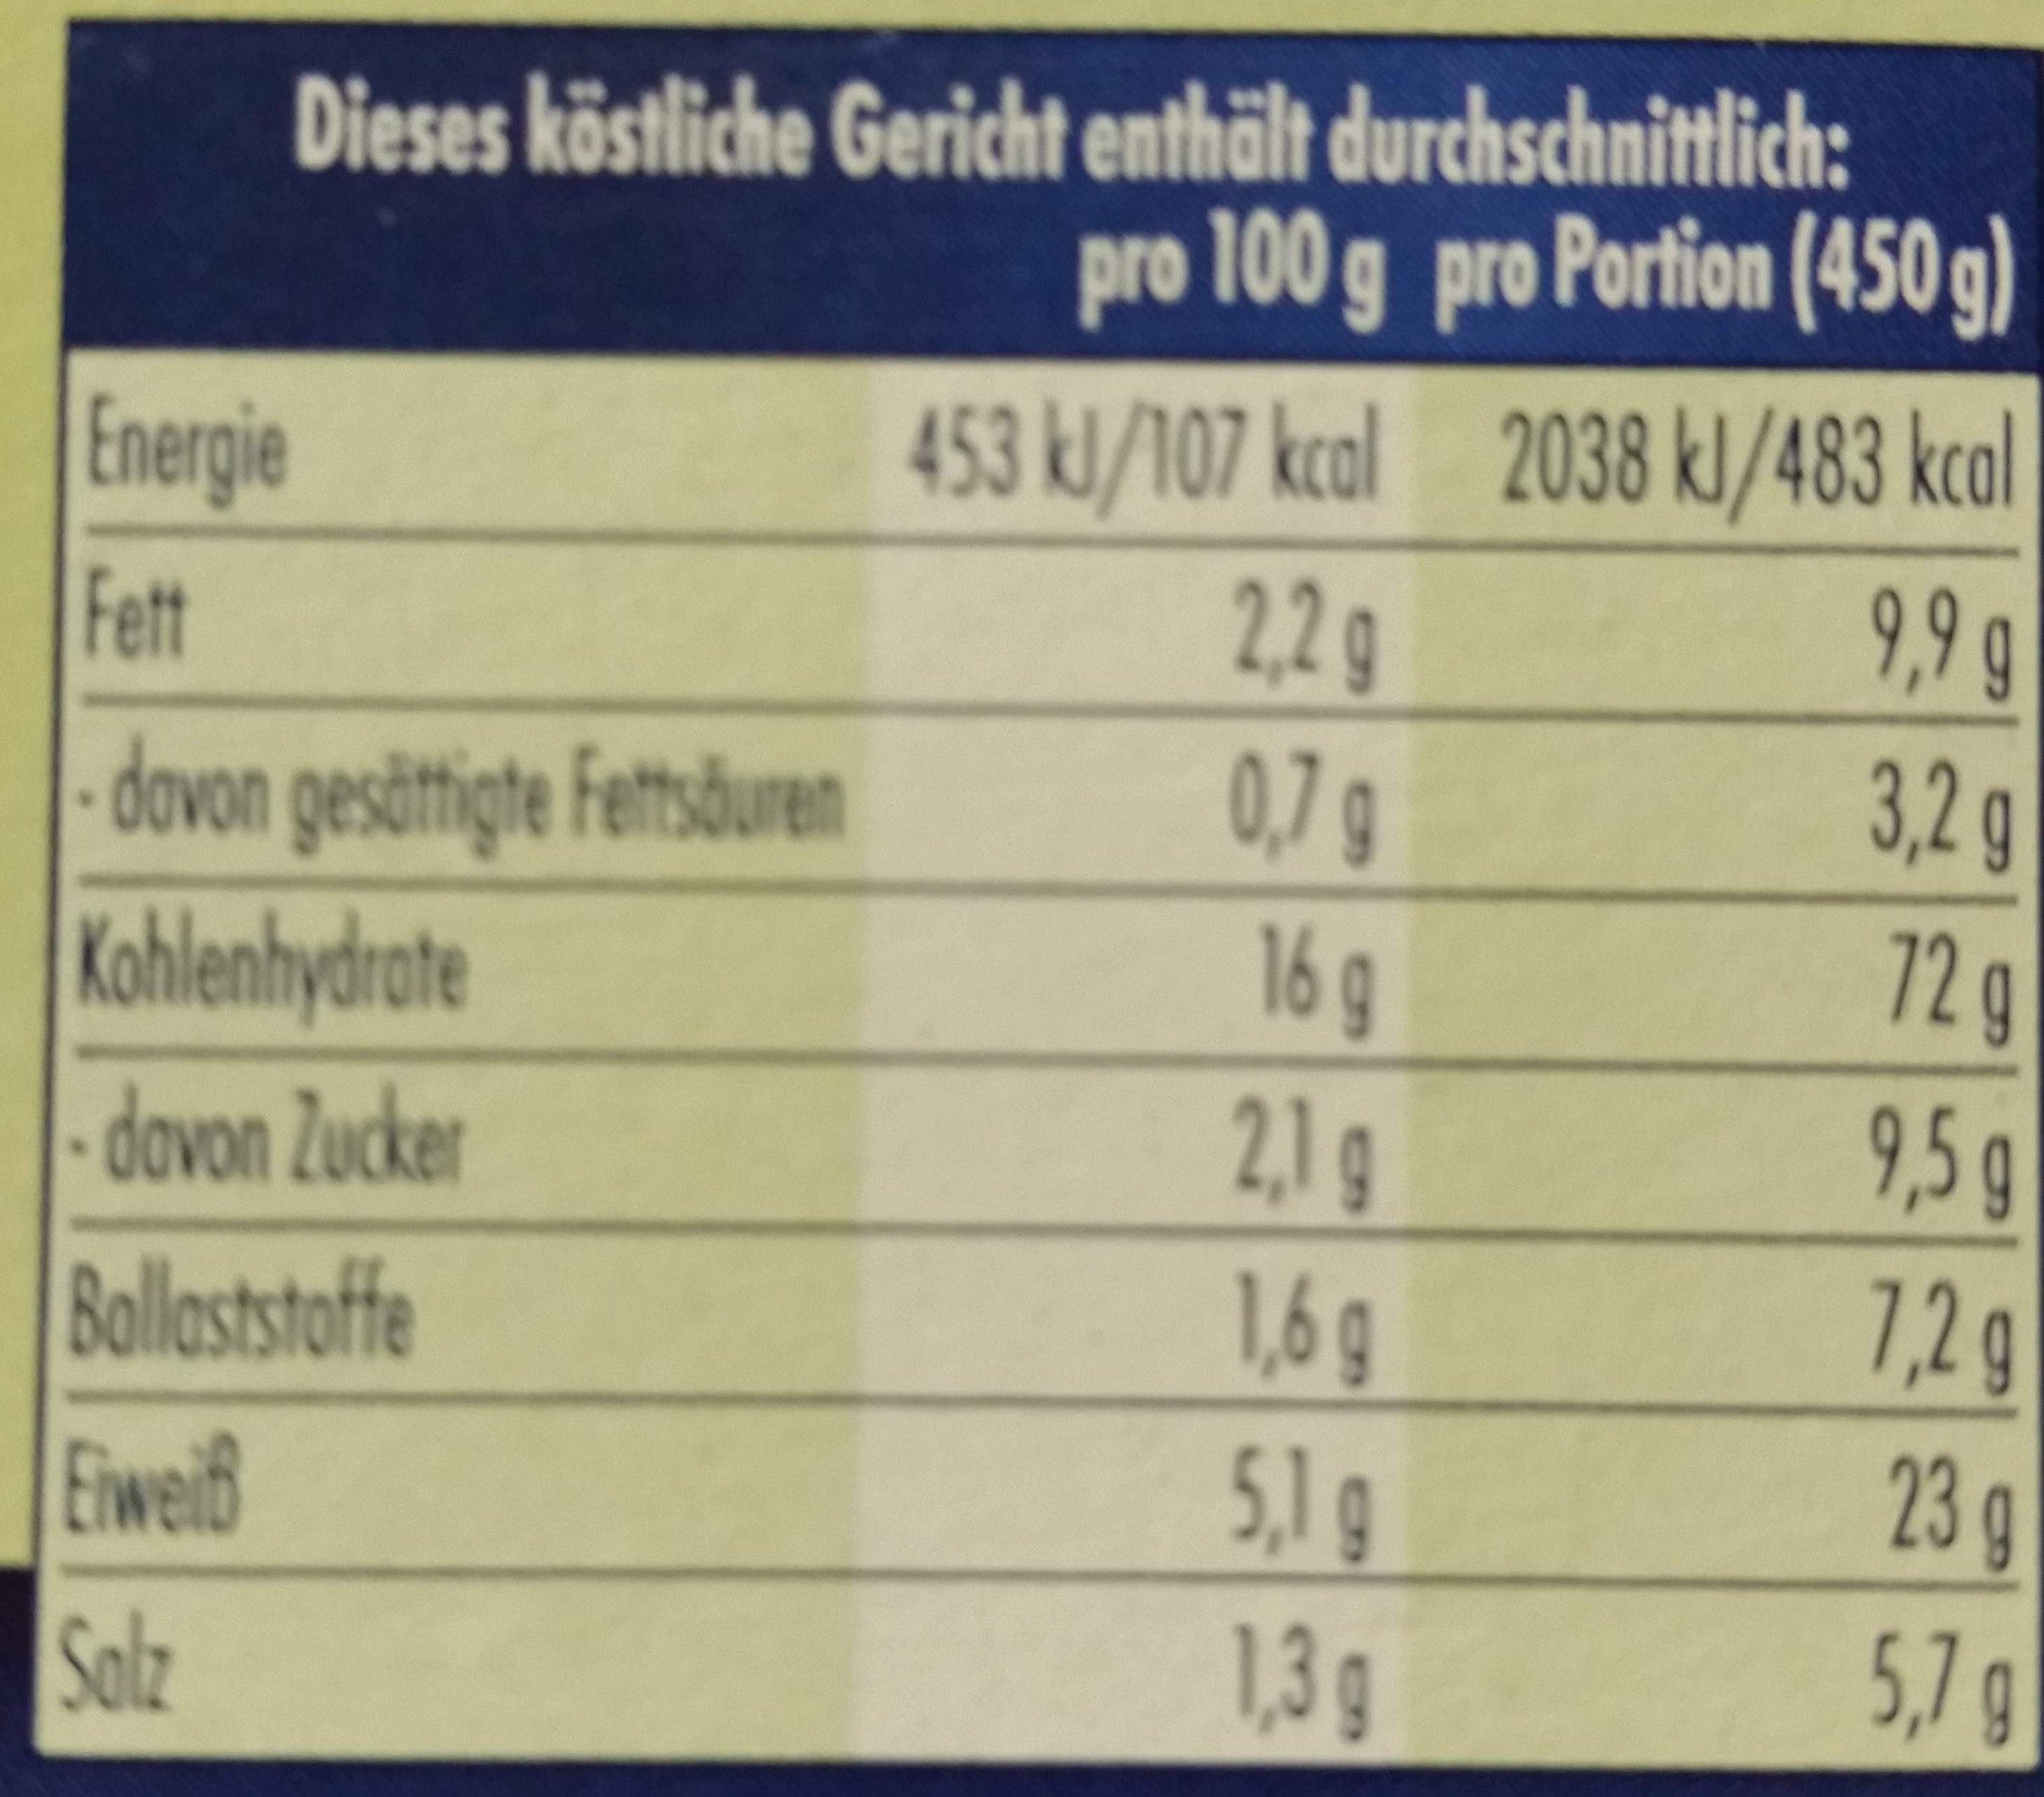 Spaghetti Bolognese - Informations nutritionnelles